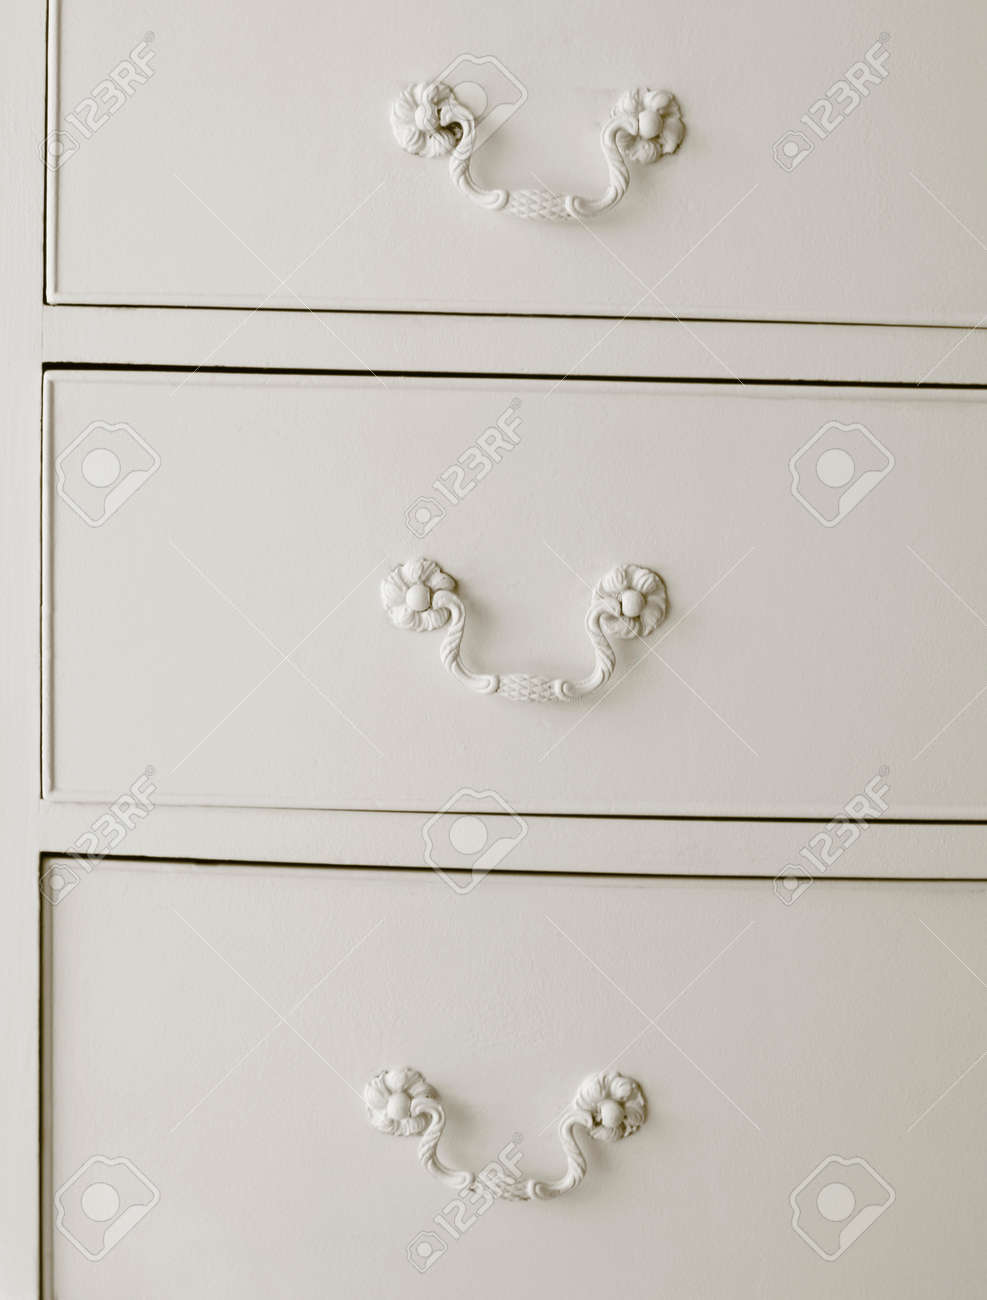 White Drawers With Old Fashioned Handles Vertical